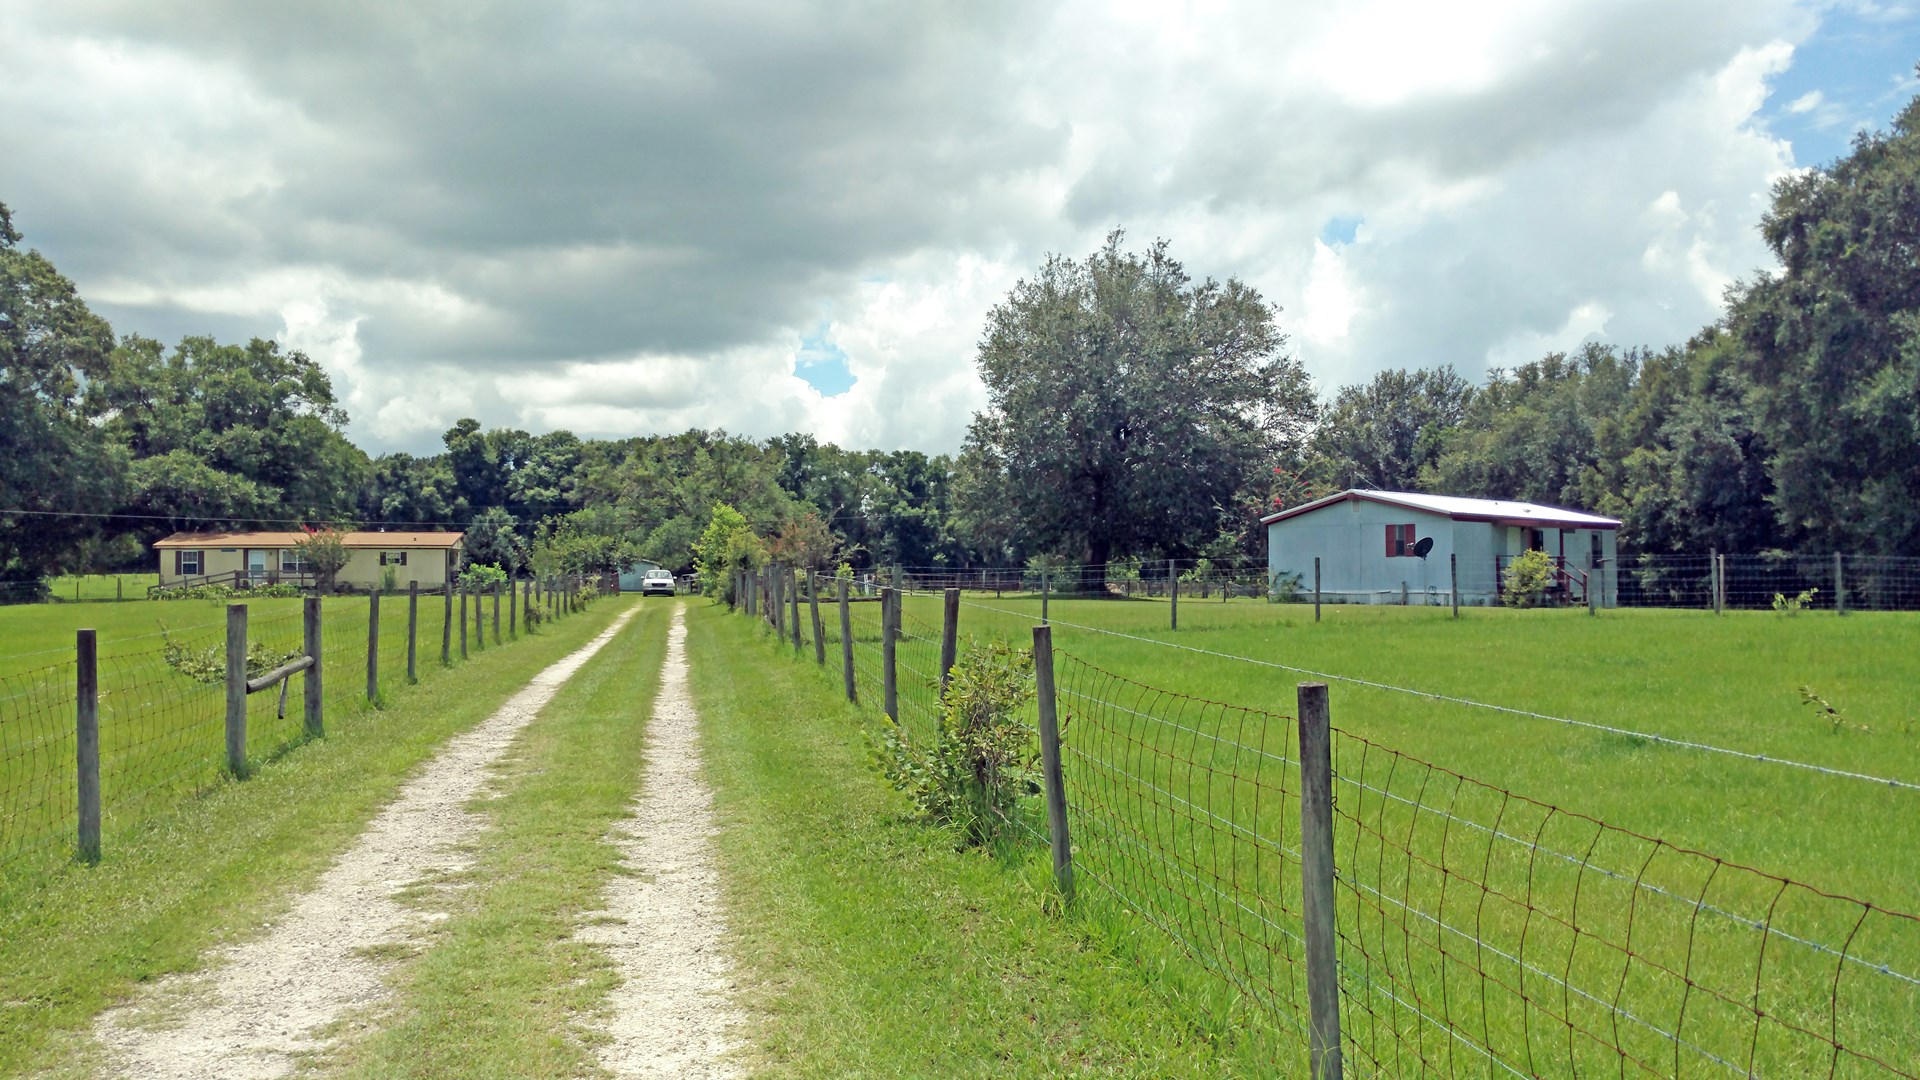 TWO MOBILE HOMES ON 12 ACRES FOR SALE IN LAKE CITY, FLORIDA